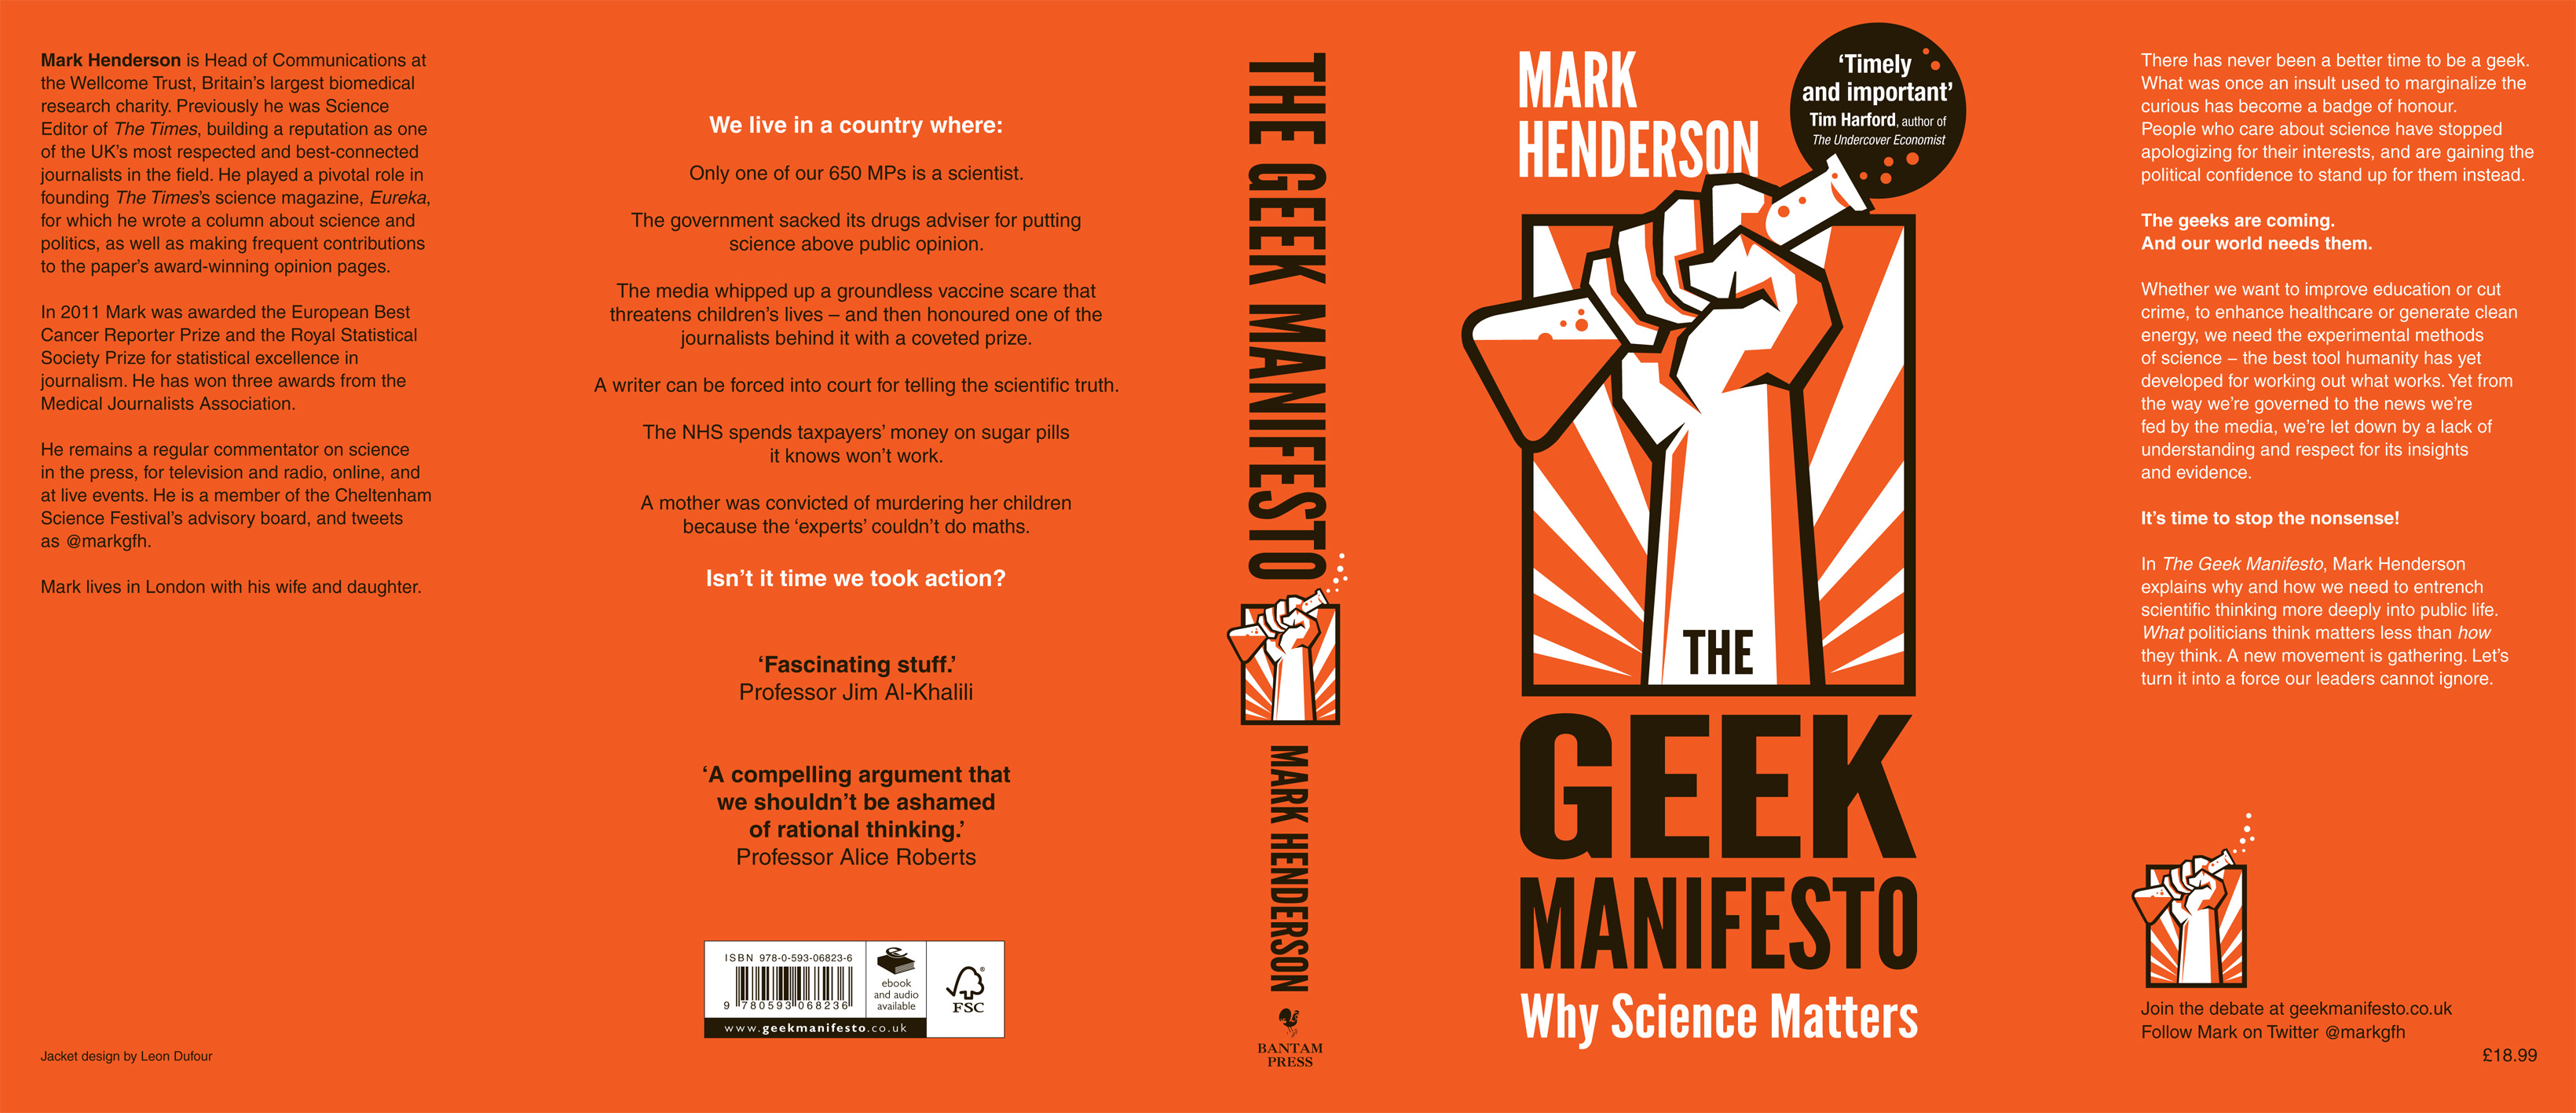 Front And Back Covers The Geek Manifesto